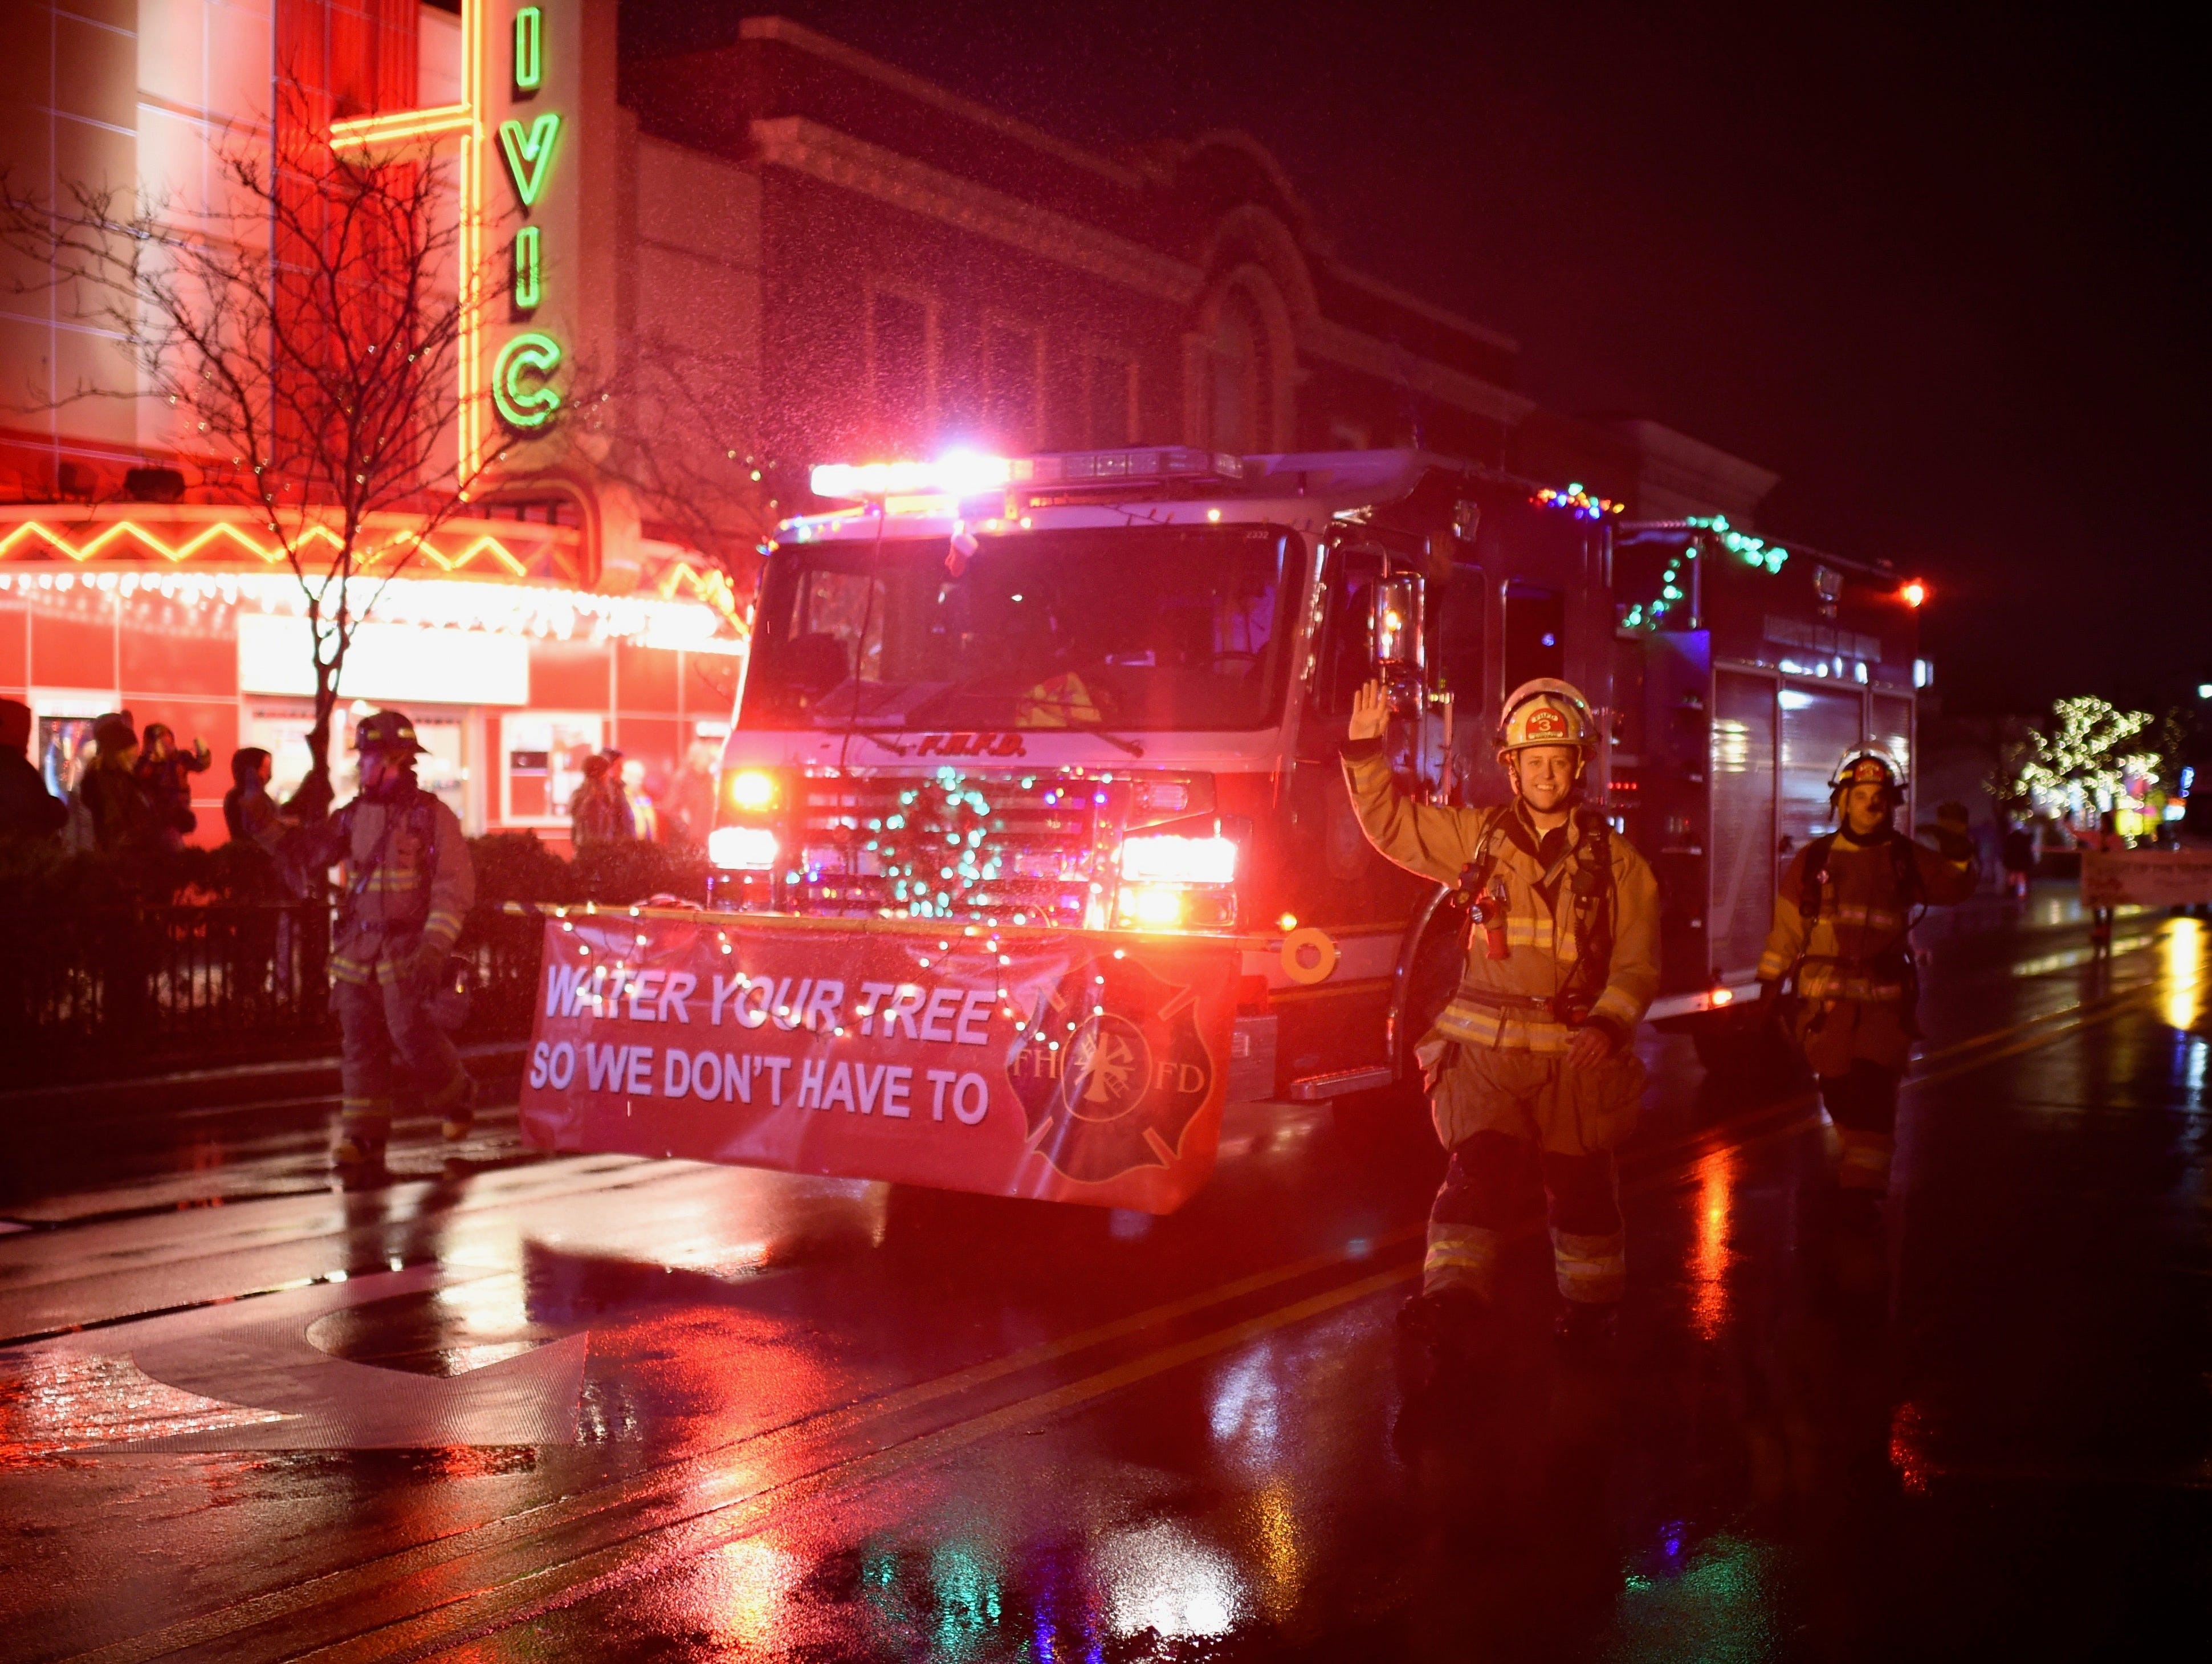 Firefighters from the Farmington Hills Fire Department are in the holiday spirit during the annual parade.